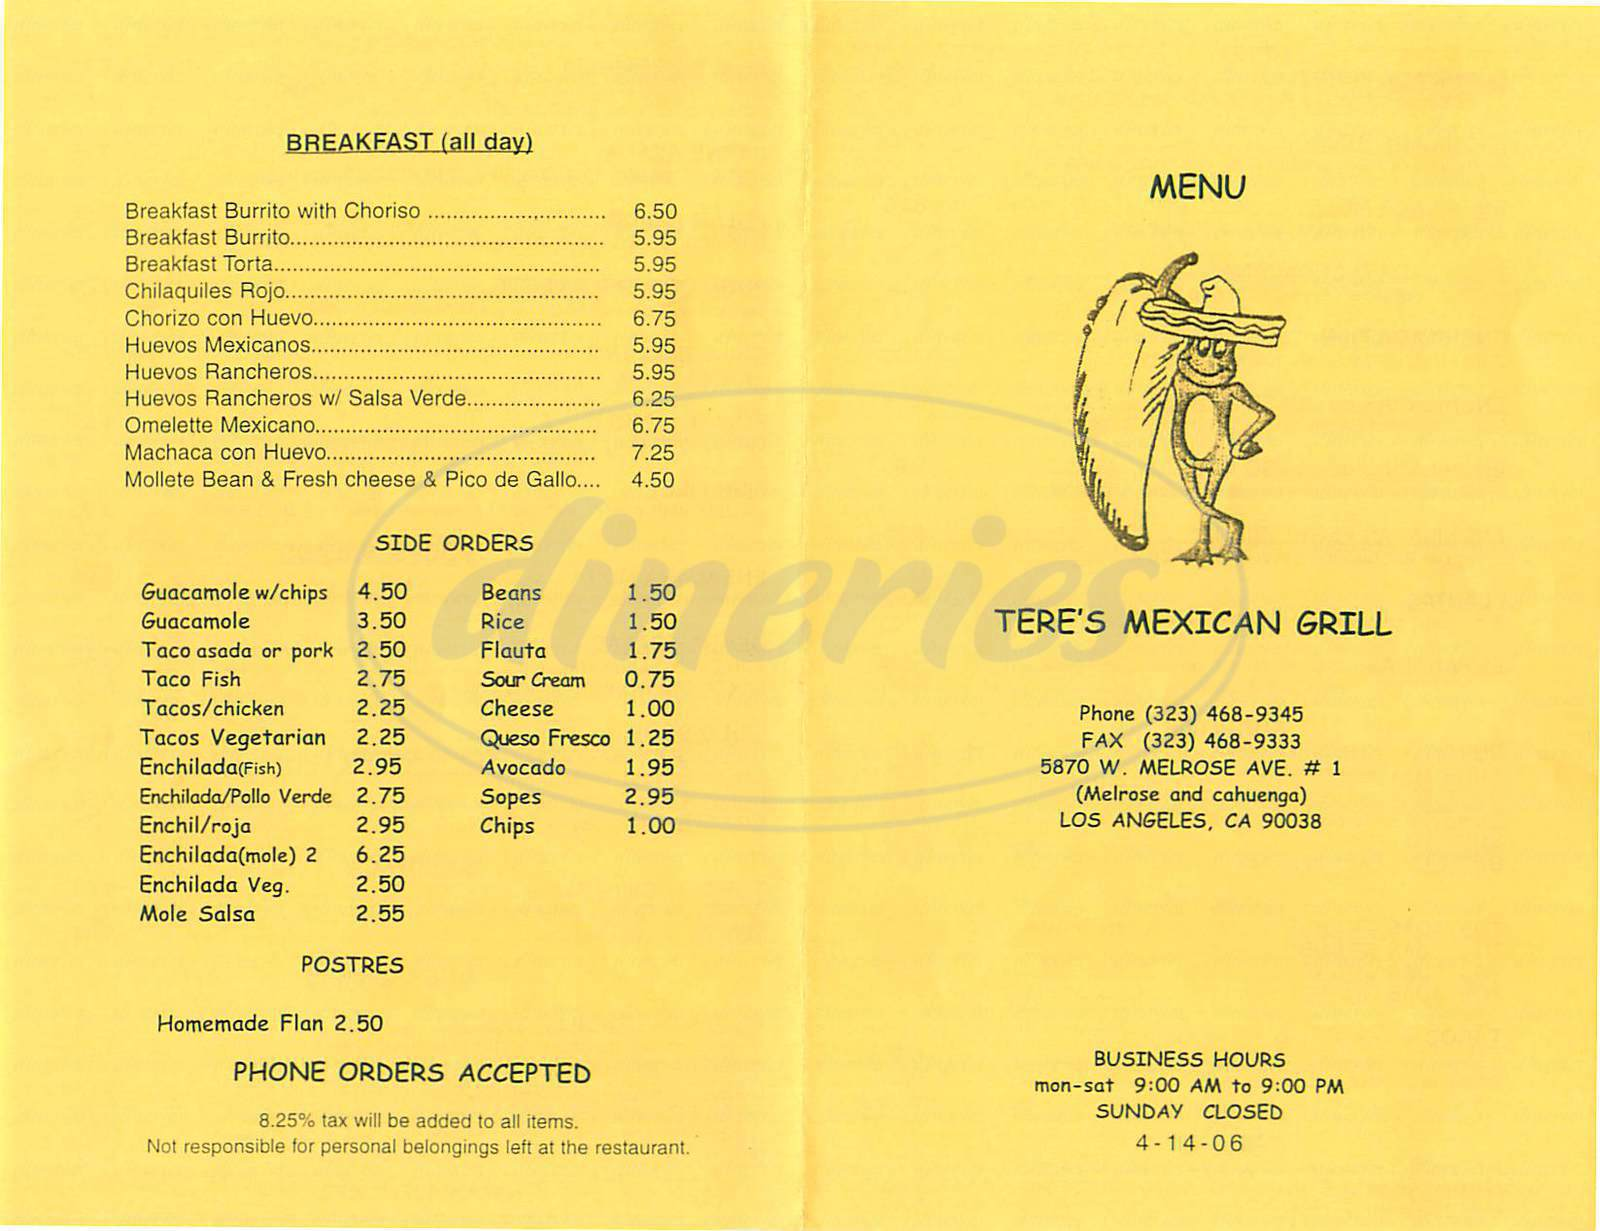 menu for Tere's Mexican Grill